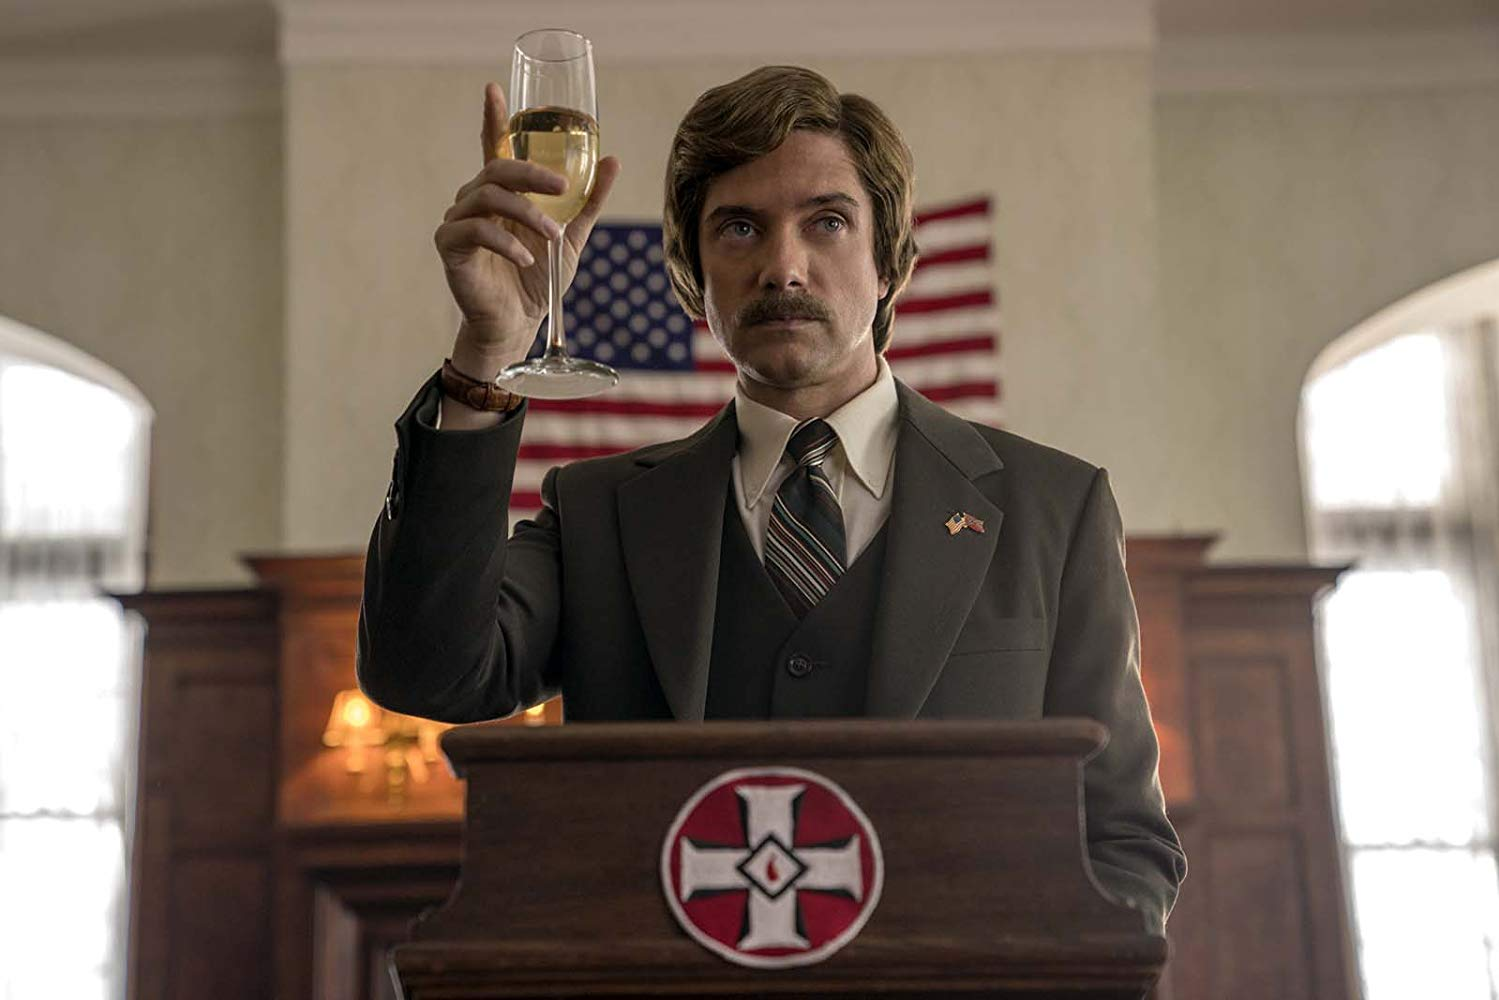 BlacKkKlansman, movie reviews, Lucas Mirabella